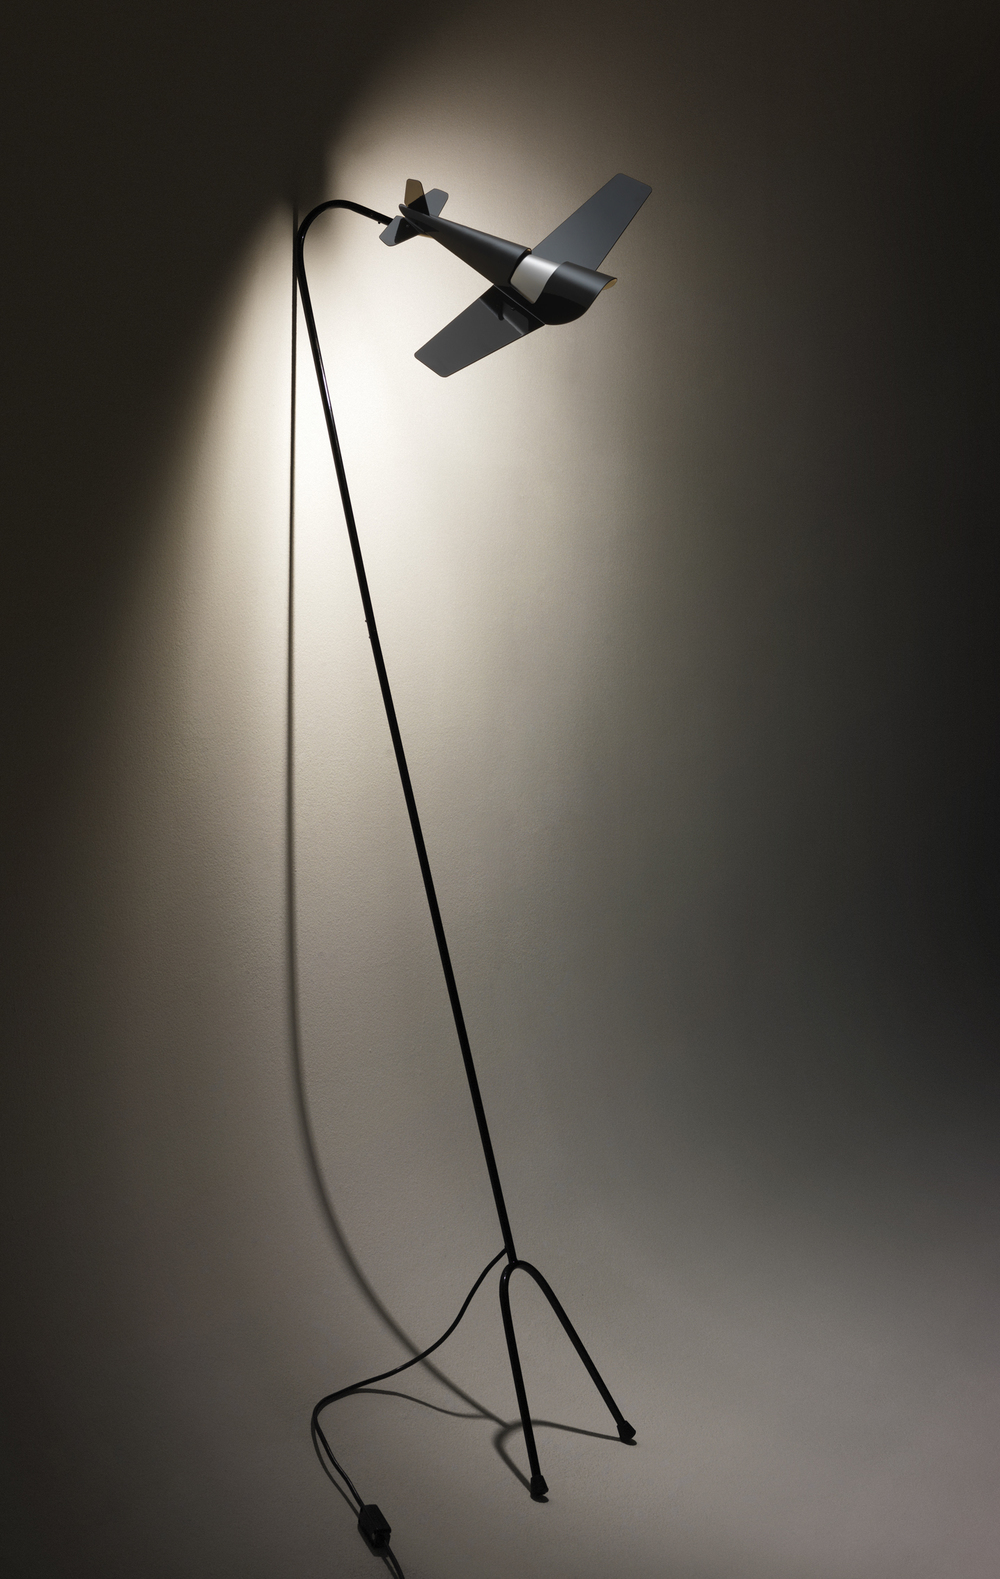 Aircraft Floor Lamp (prototype) | 2010 | Powder Coated Steel, Stainless Steel, 240v Lighting Components | 1.8M